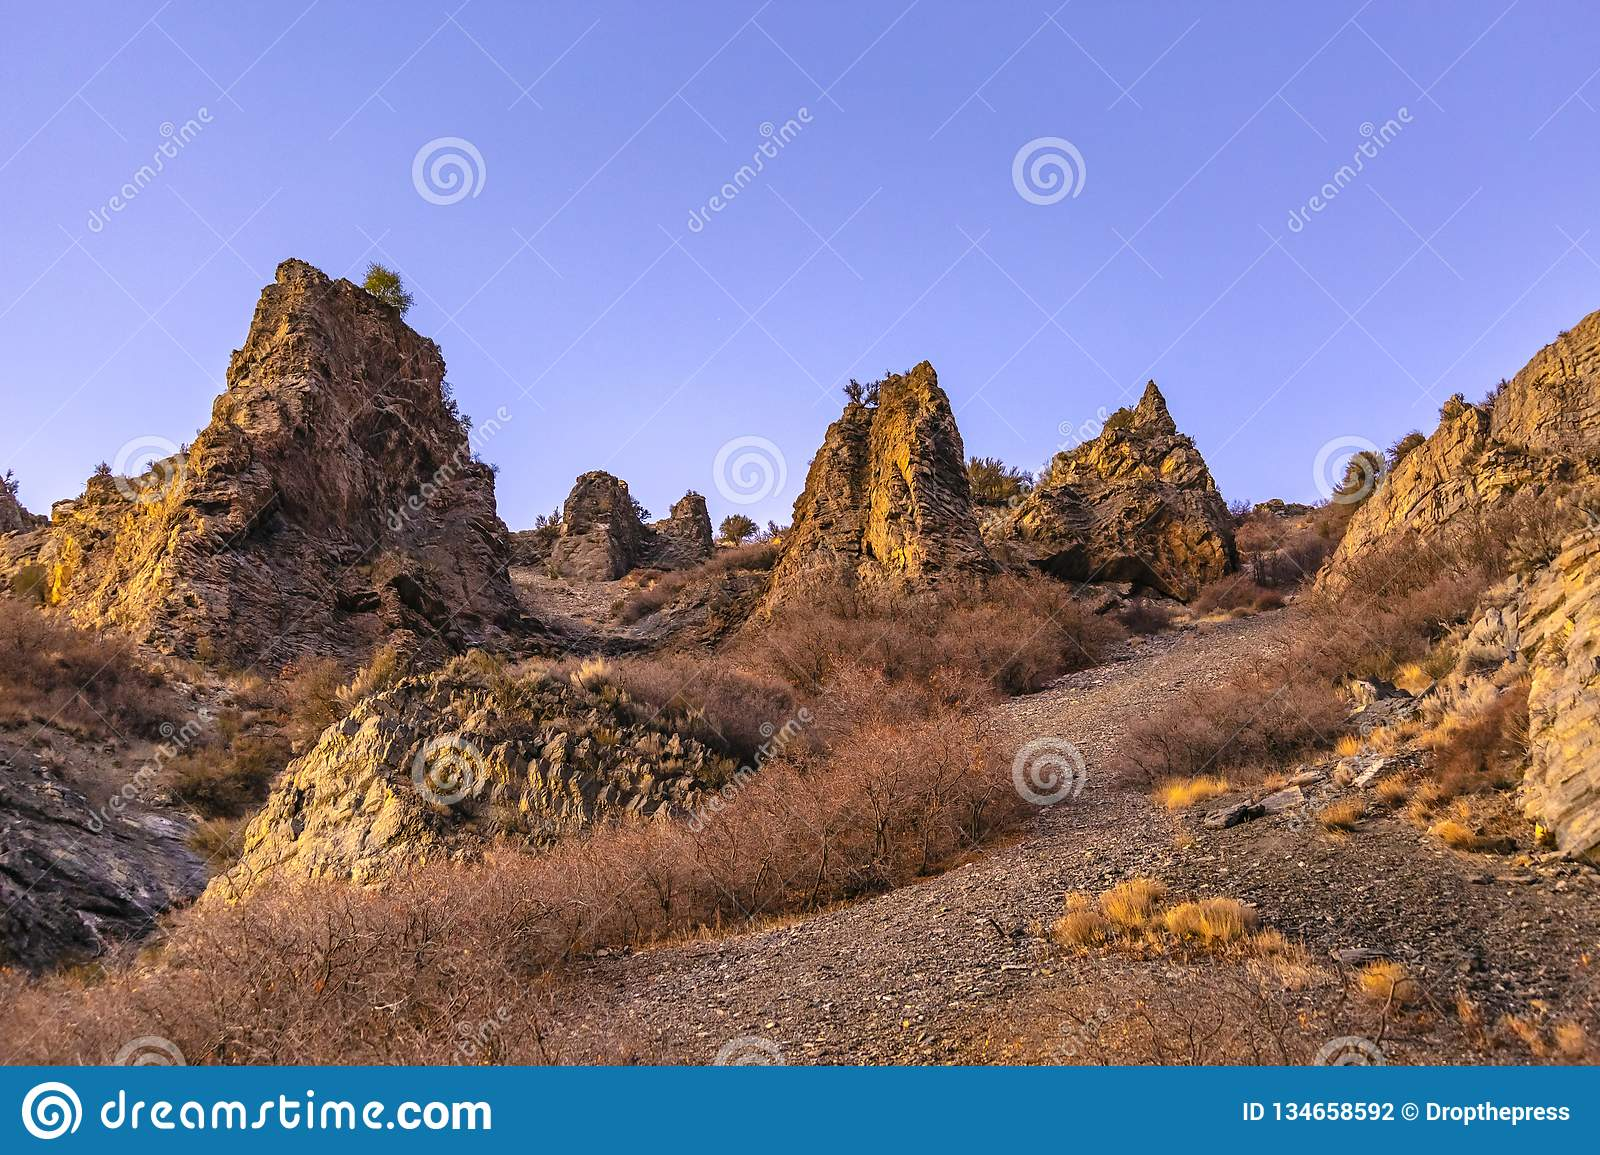 Jagged and rocky mounds on the side of a mountain